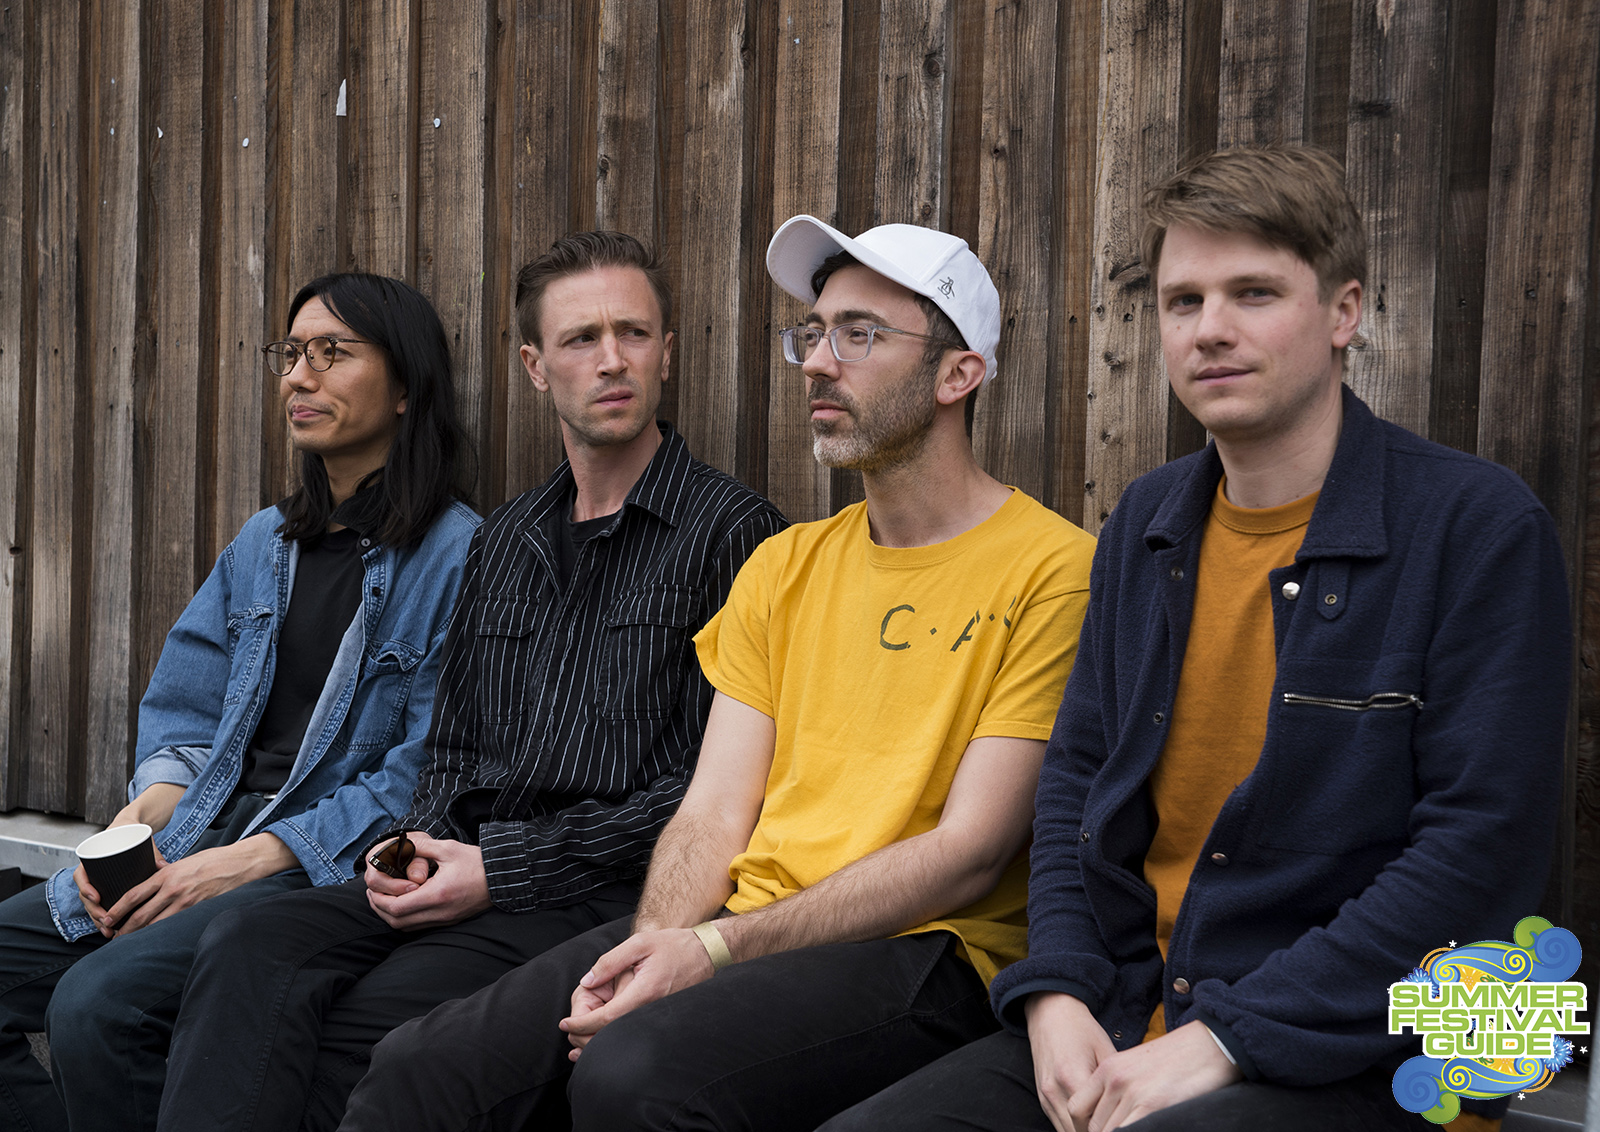 Interview with Teleman at Cambridge Junction